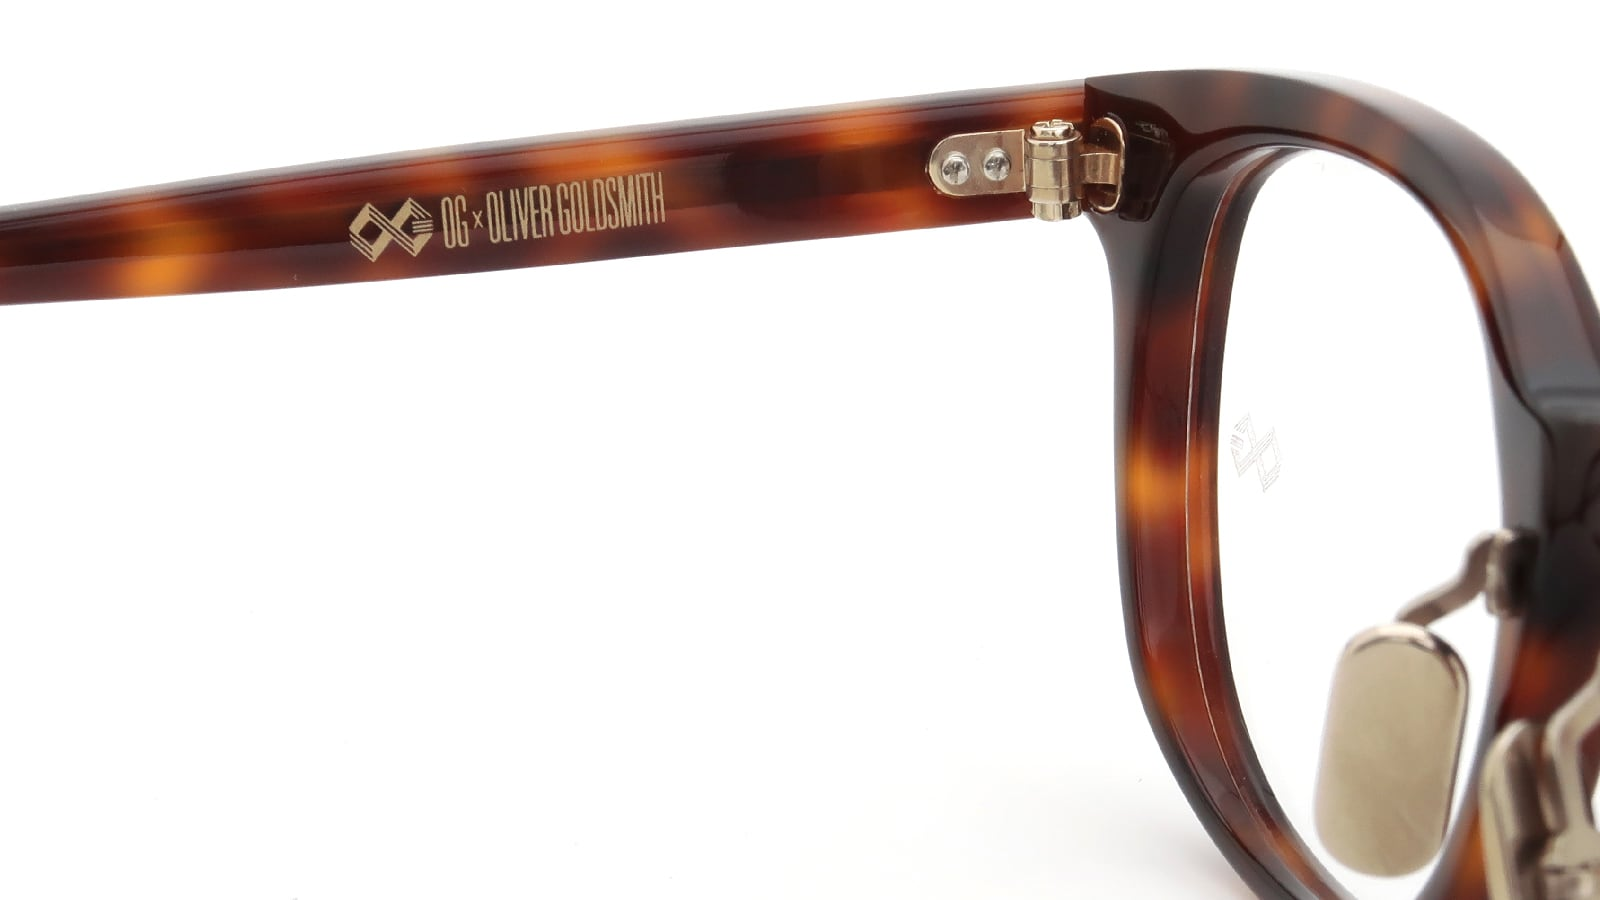 OG × OLIVER GOLDSMITH PUT IN two 49 9